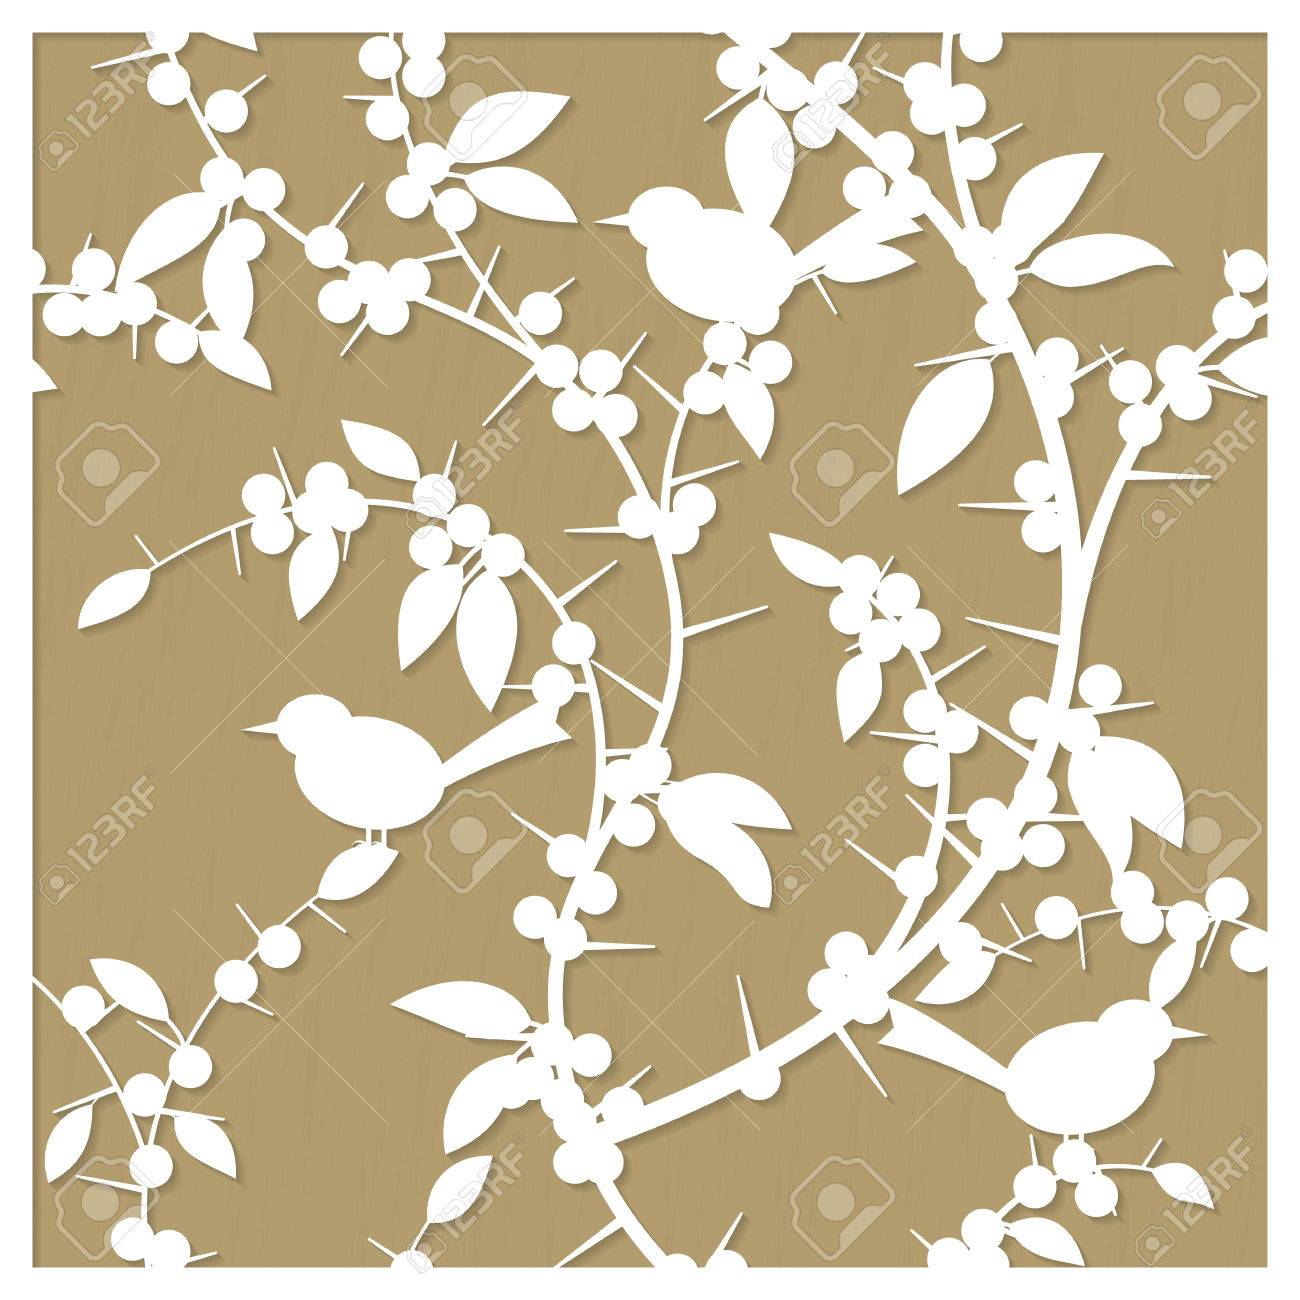 Laser cut decorative pattern with blackthorn berries and birds